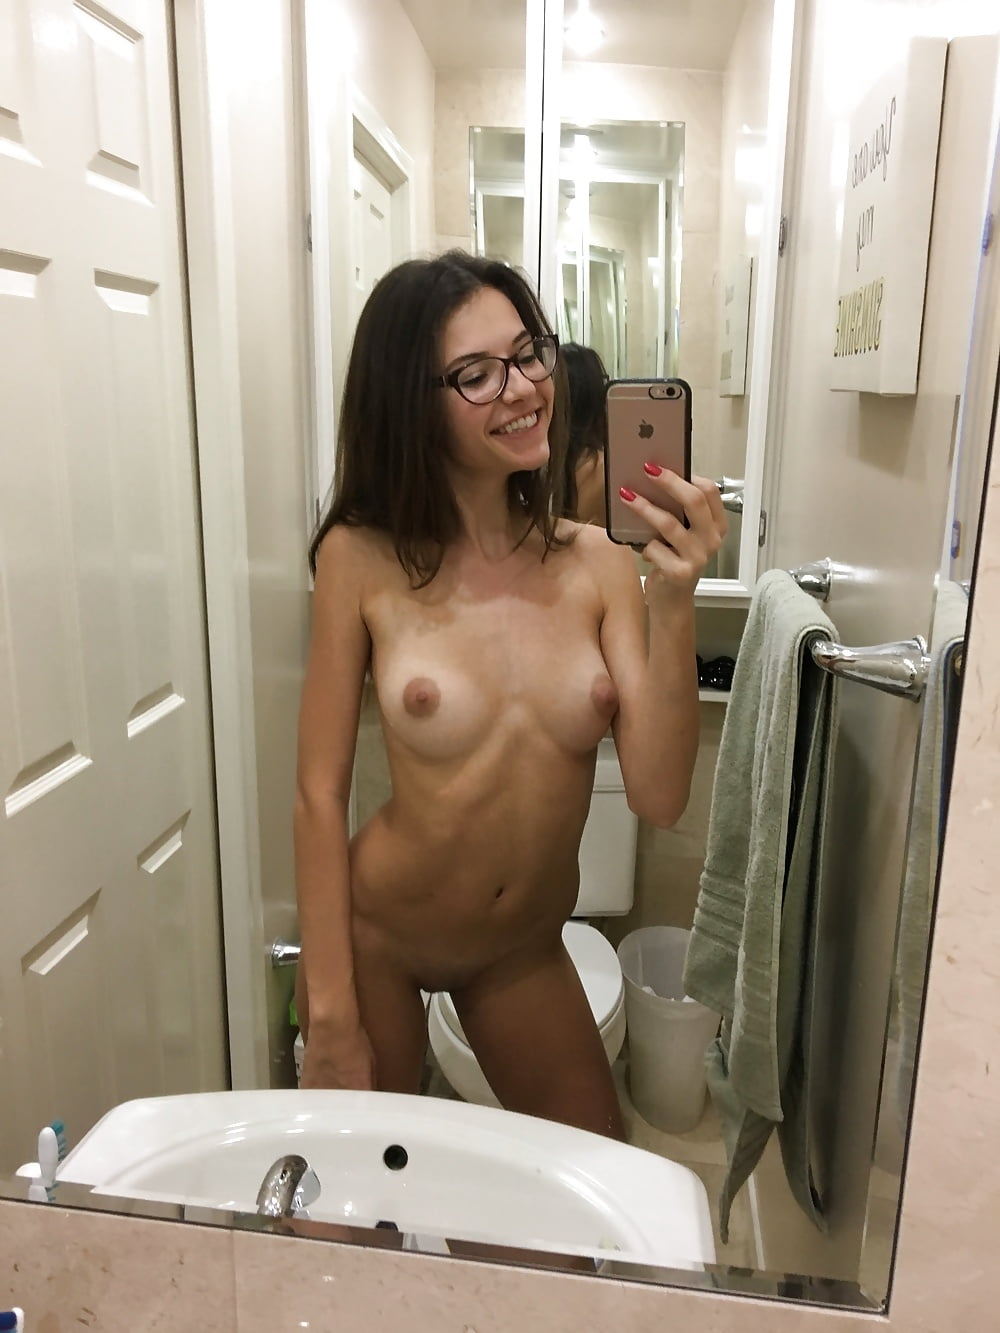 Amateur girls who took nude pictures of themselves